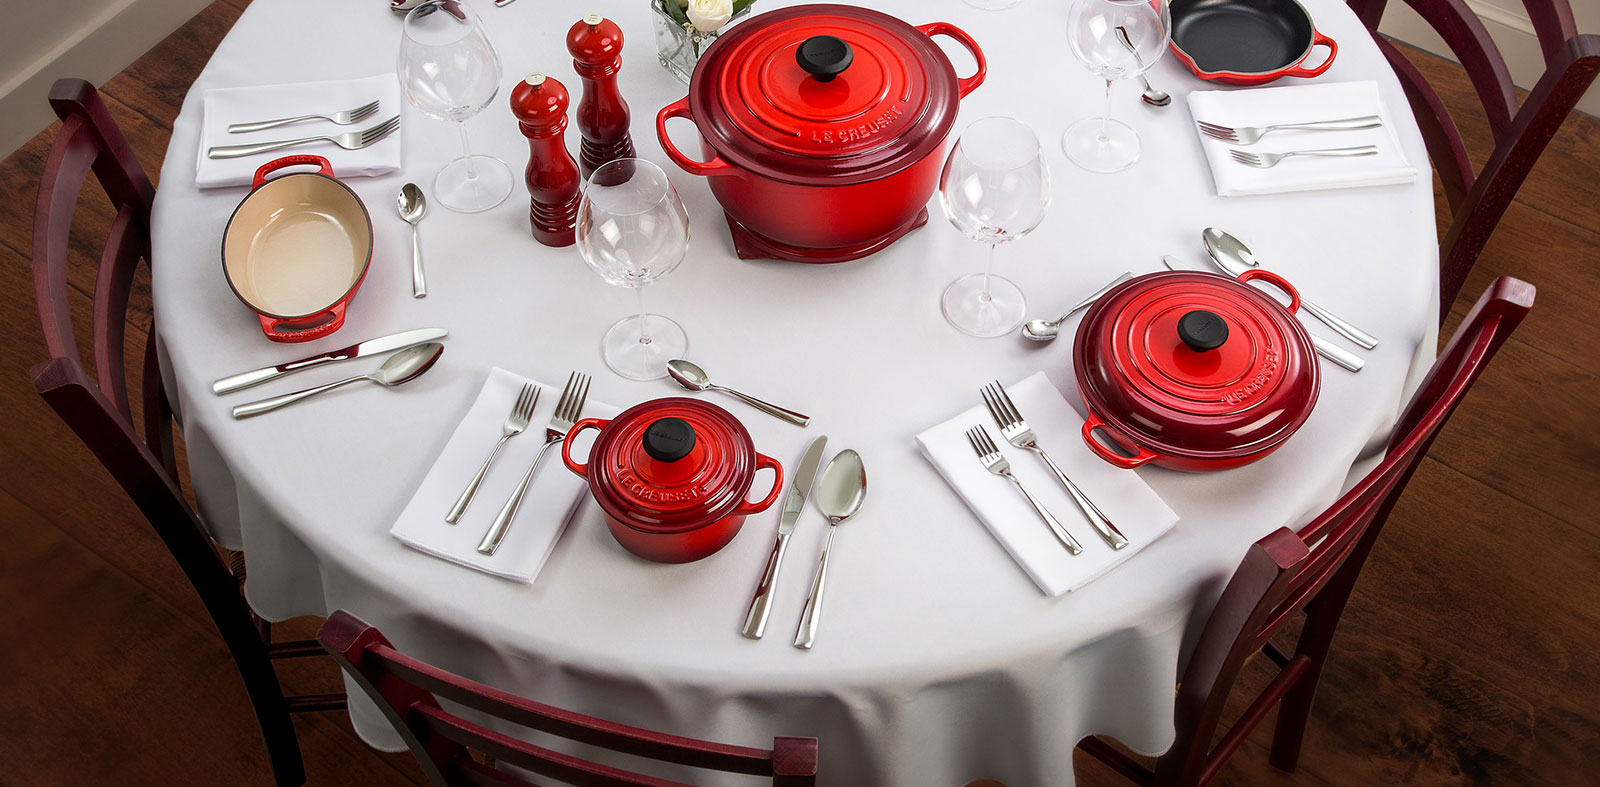 Le Creuset table setting